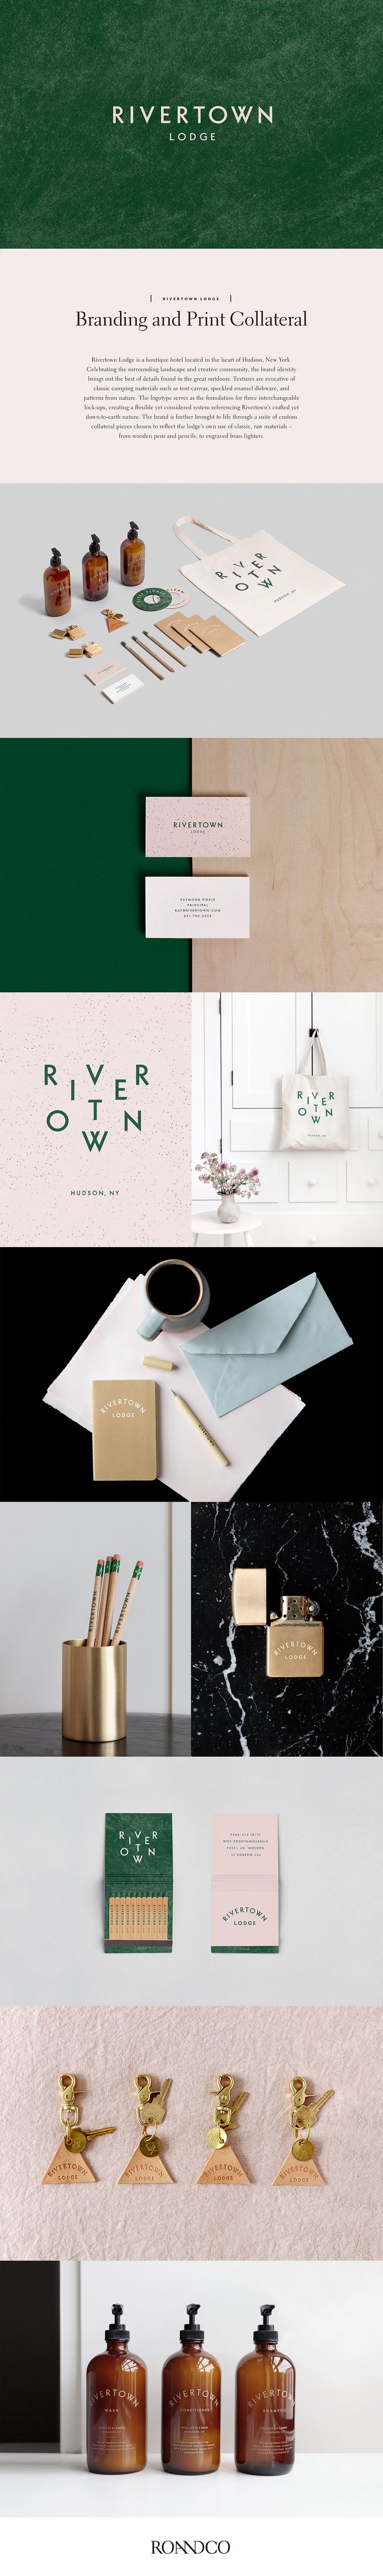 Behance :: Editing Rivertown Lodge